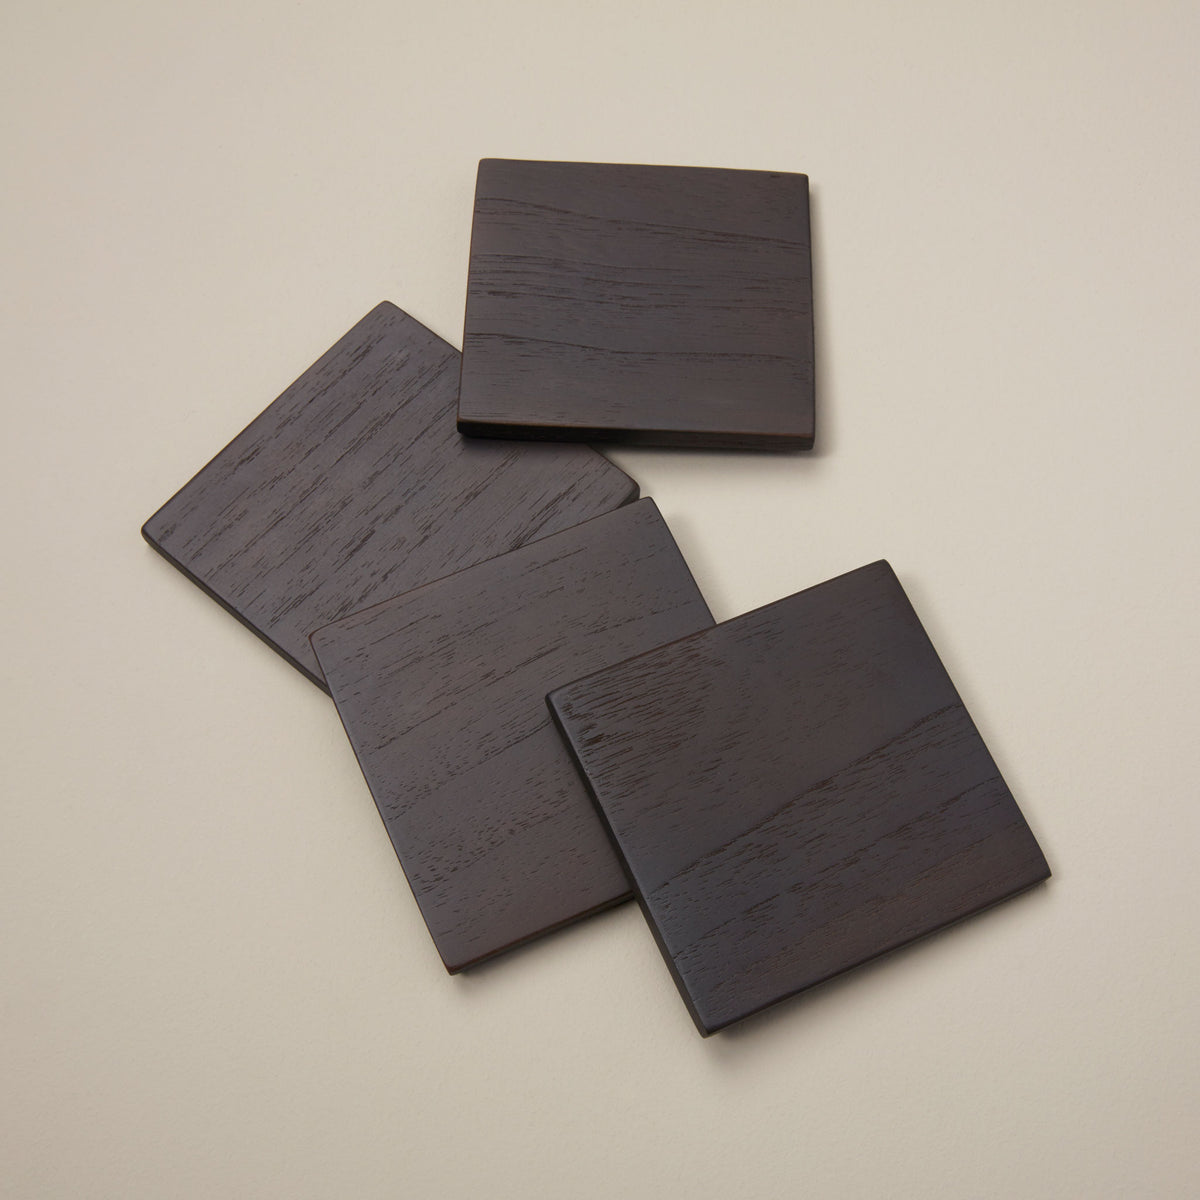 Ebony Teak Square Coasters, Set of 4